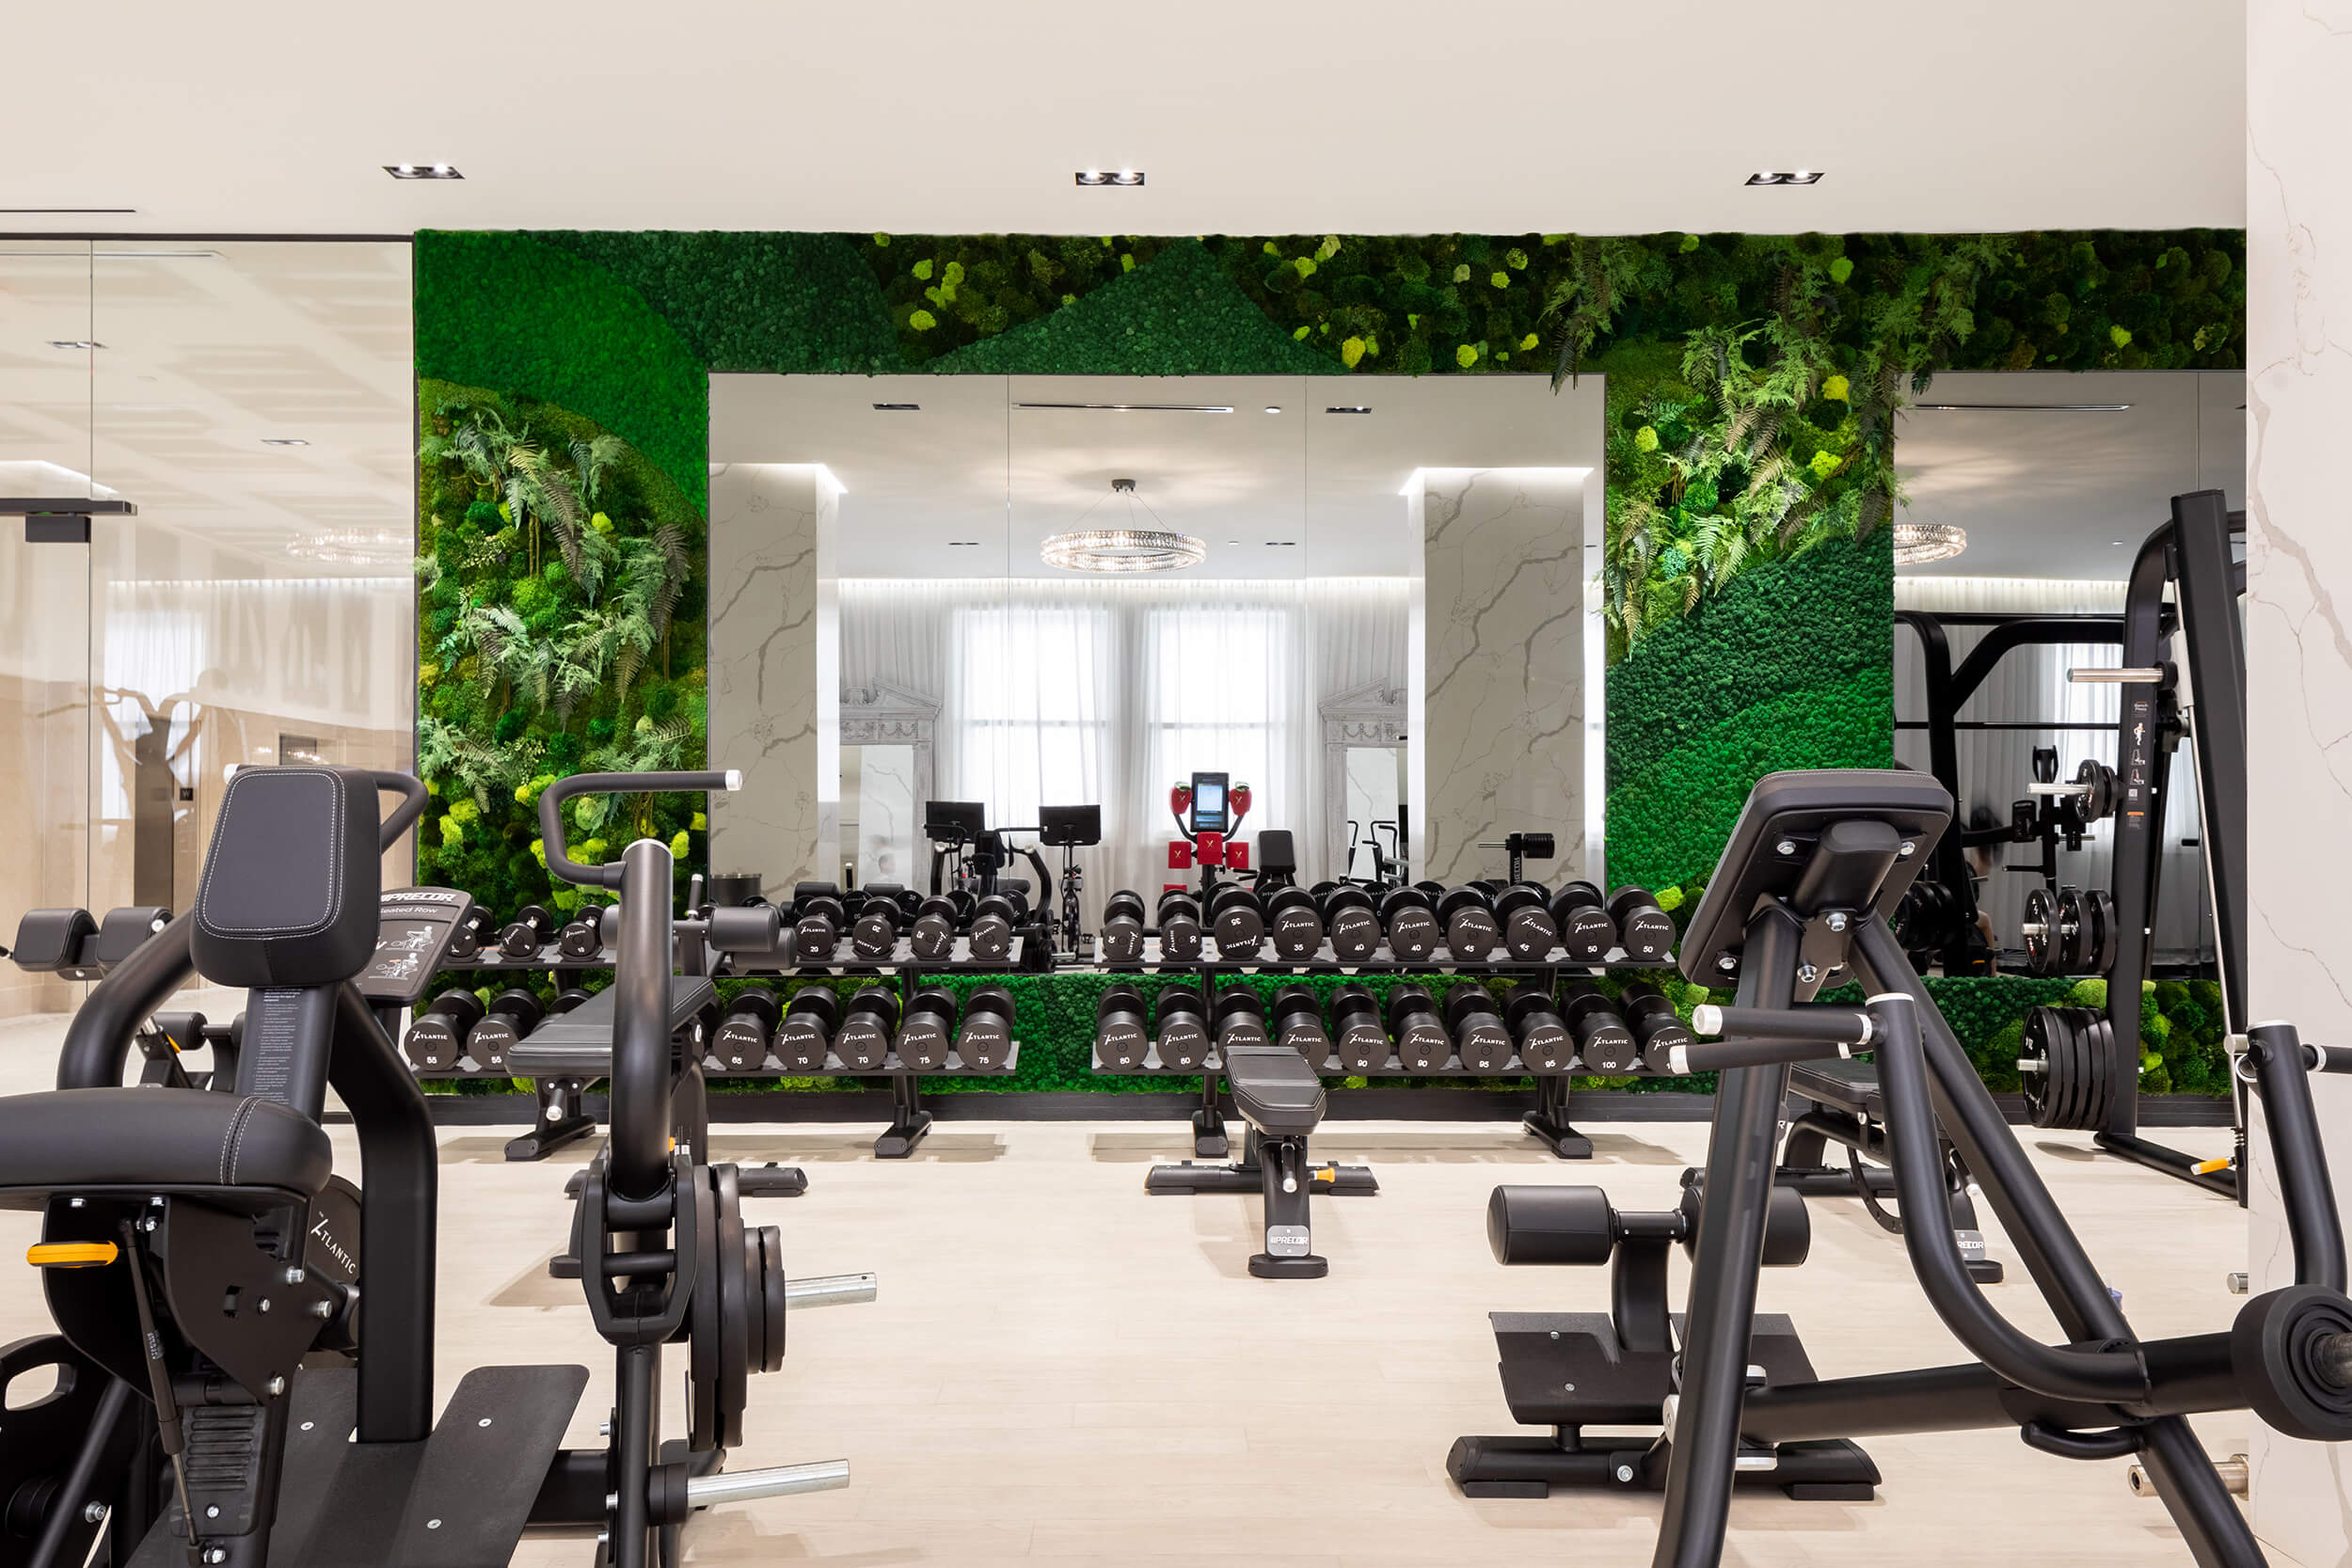 Fitness Center Green Wall